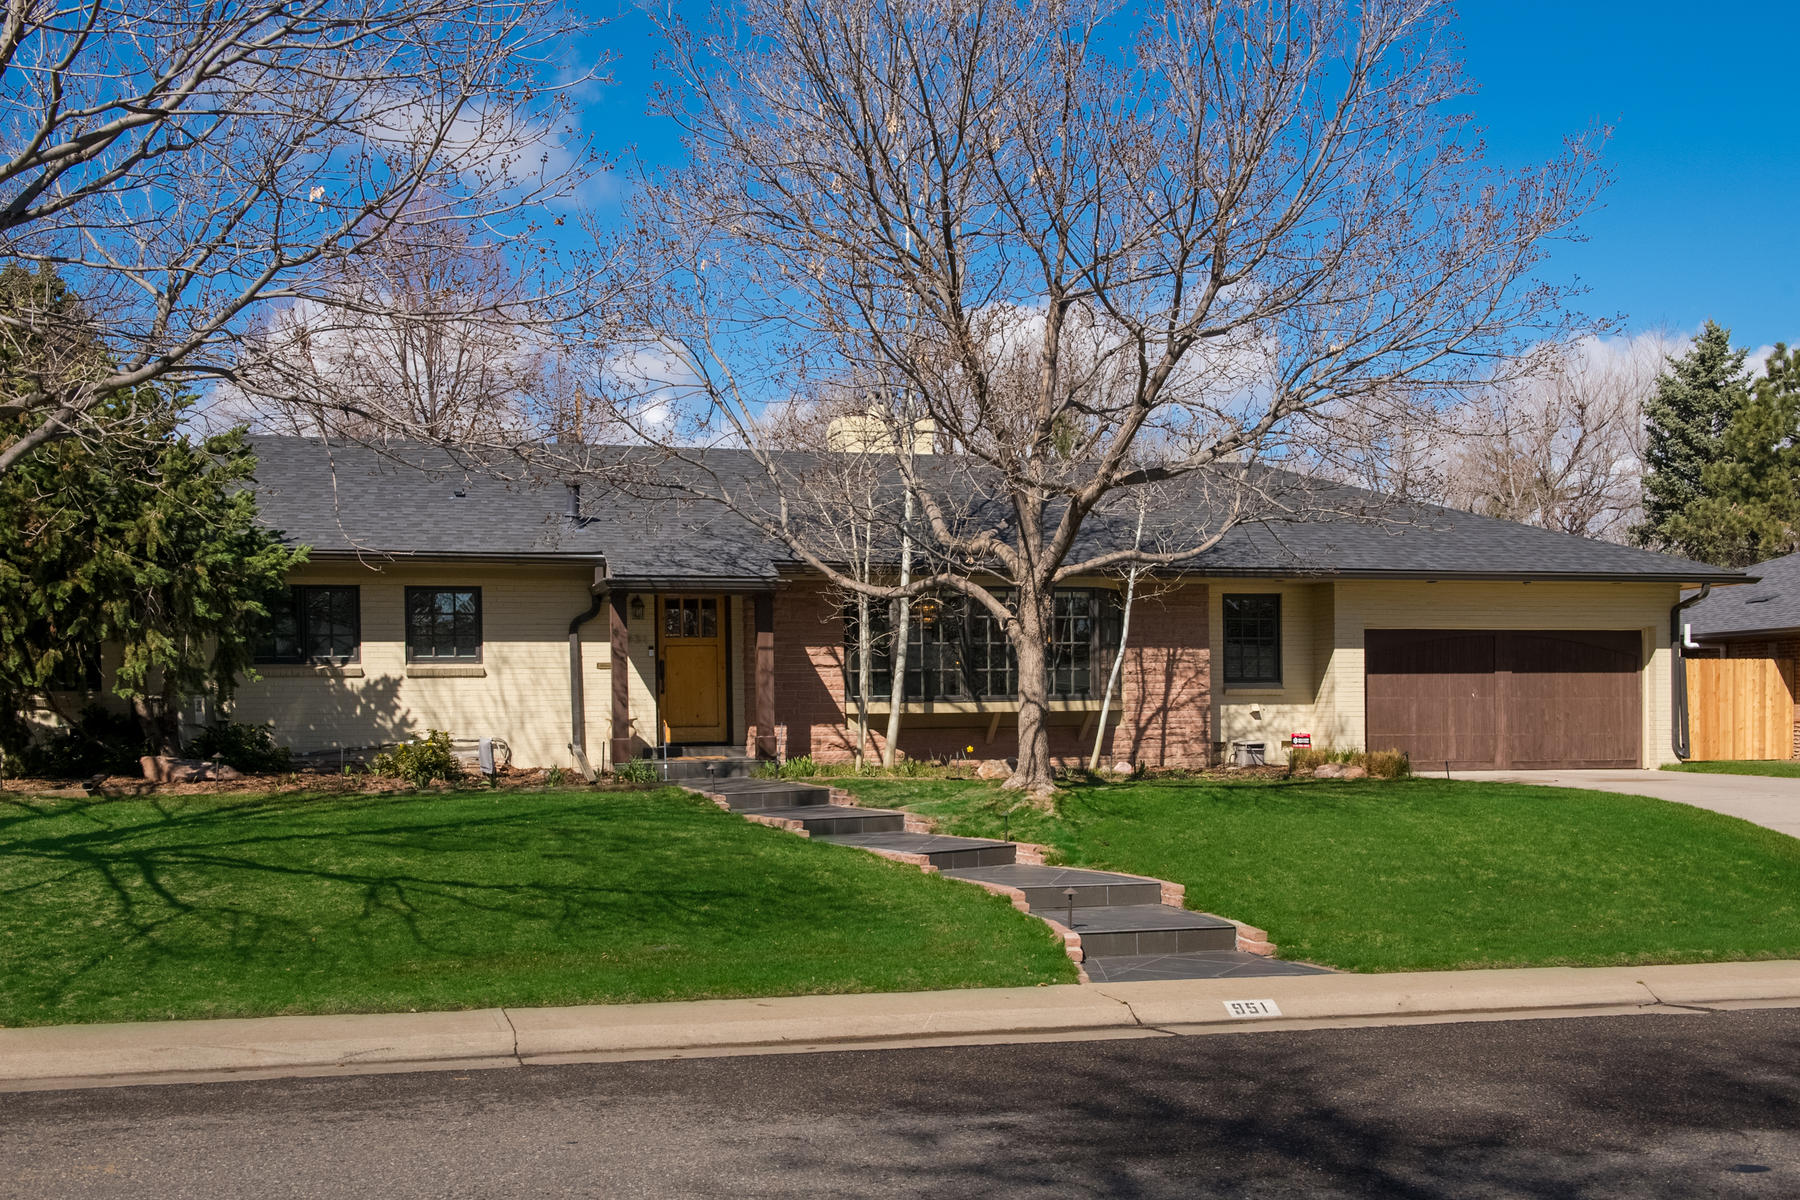 Single Family Home for Active at Fabulous Brick Ranch In The Heart Of Belcaro 951 South Garfield Street Denver, Colorado 80209 United States